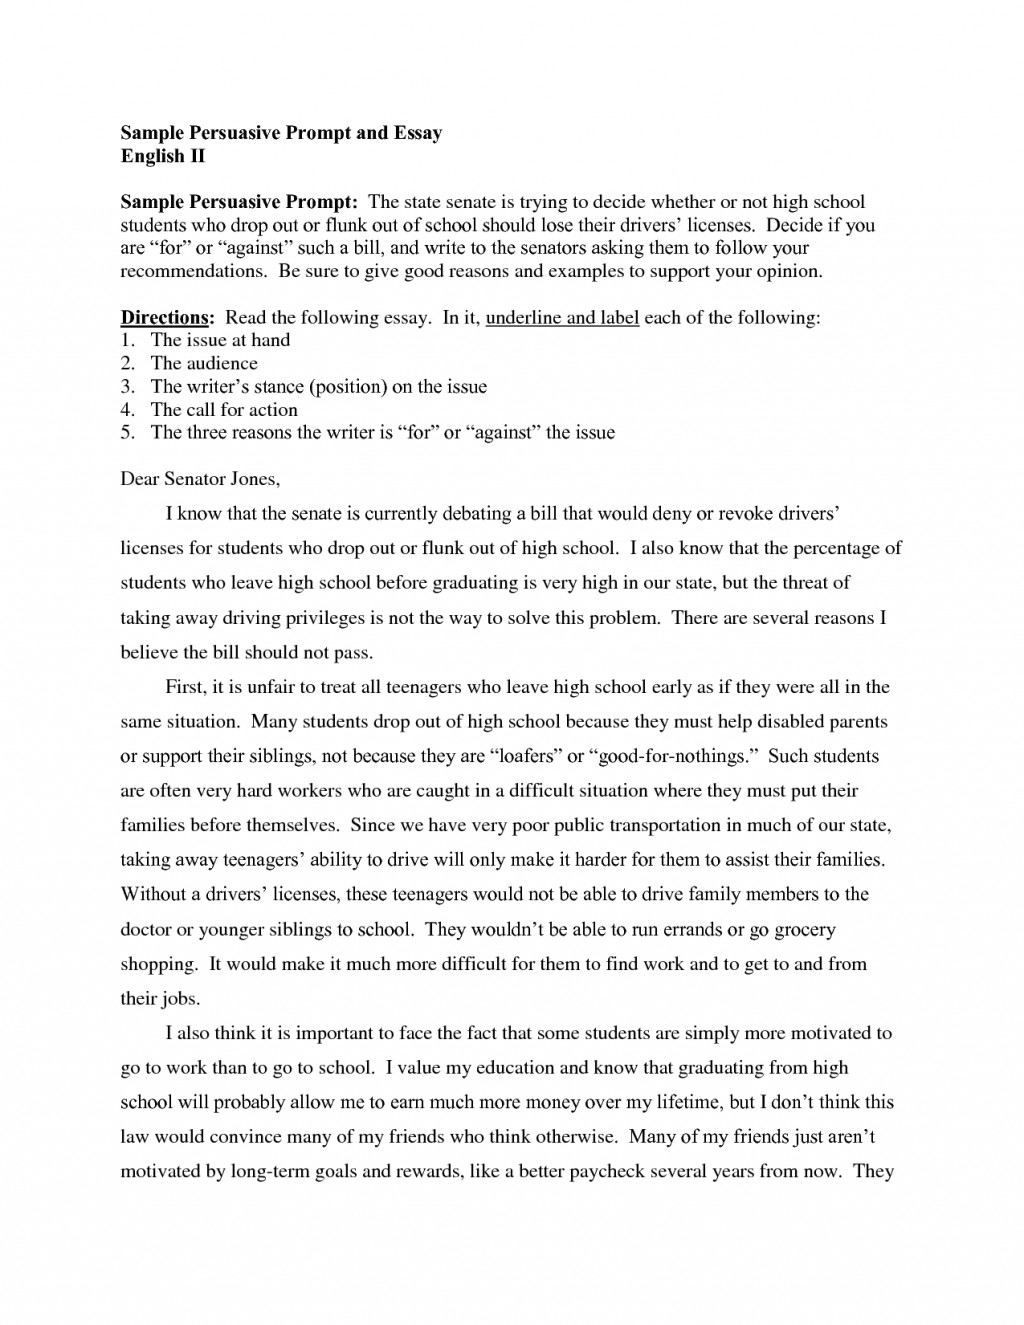 013 Research Paper Easy Topic Persuasive Essay Topics For High School Sample Ideas Highschool Students Good Prompt Funny Fun List Of Seniors Writing English Sensational To Write About Psychology American History Large